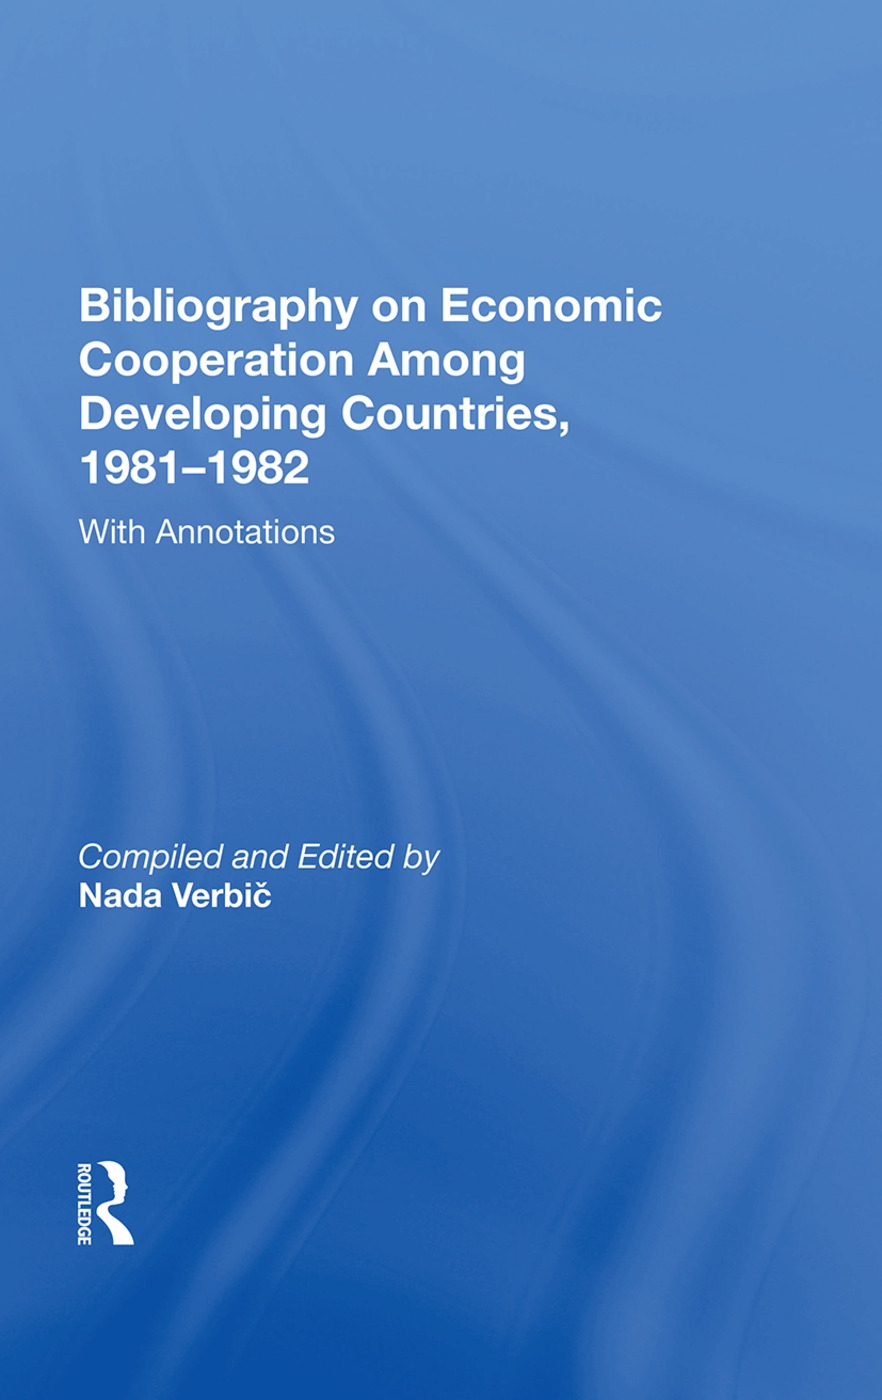 Bibliography On Economic Cooperation Among Developing Countries, 1981-1982: With Annotations book cover